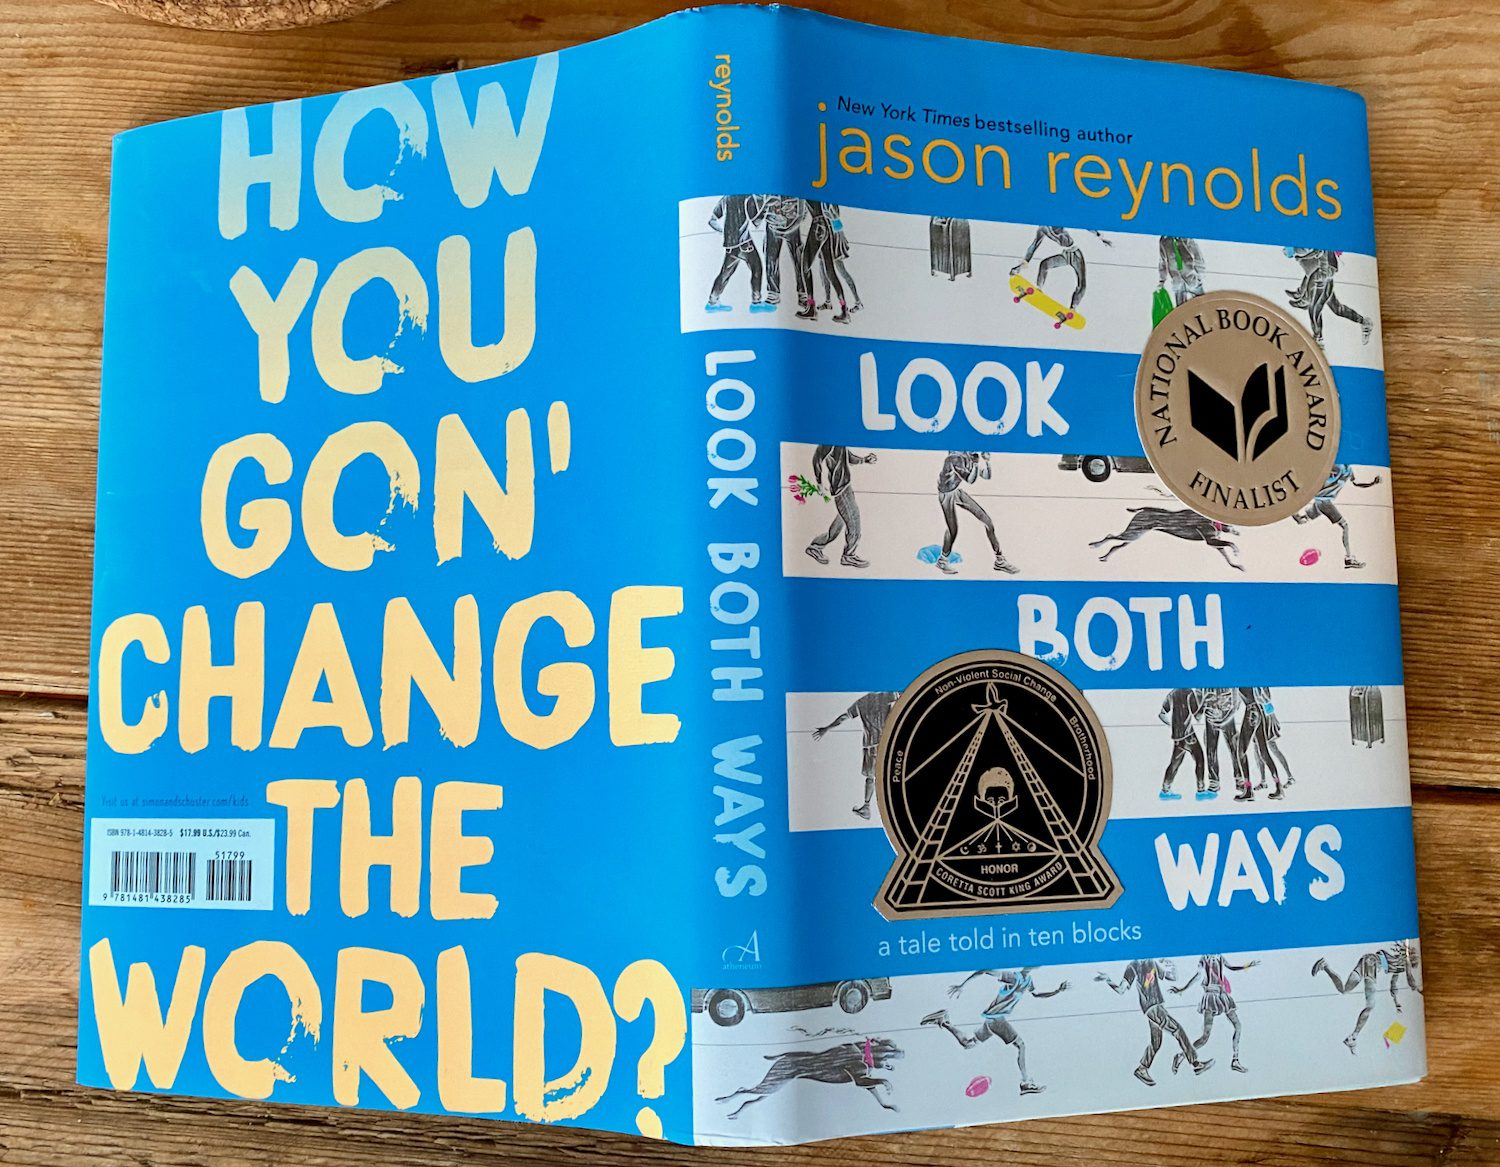 Look Both Ways is such a great book!